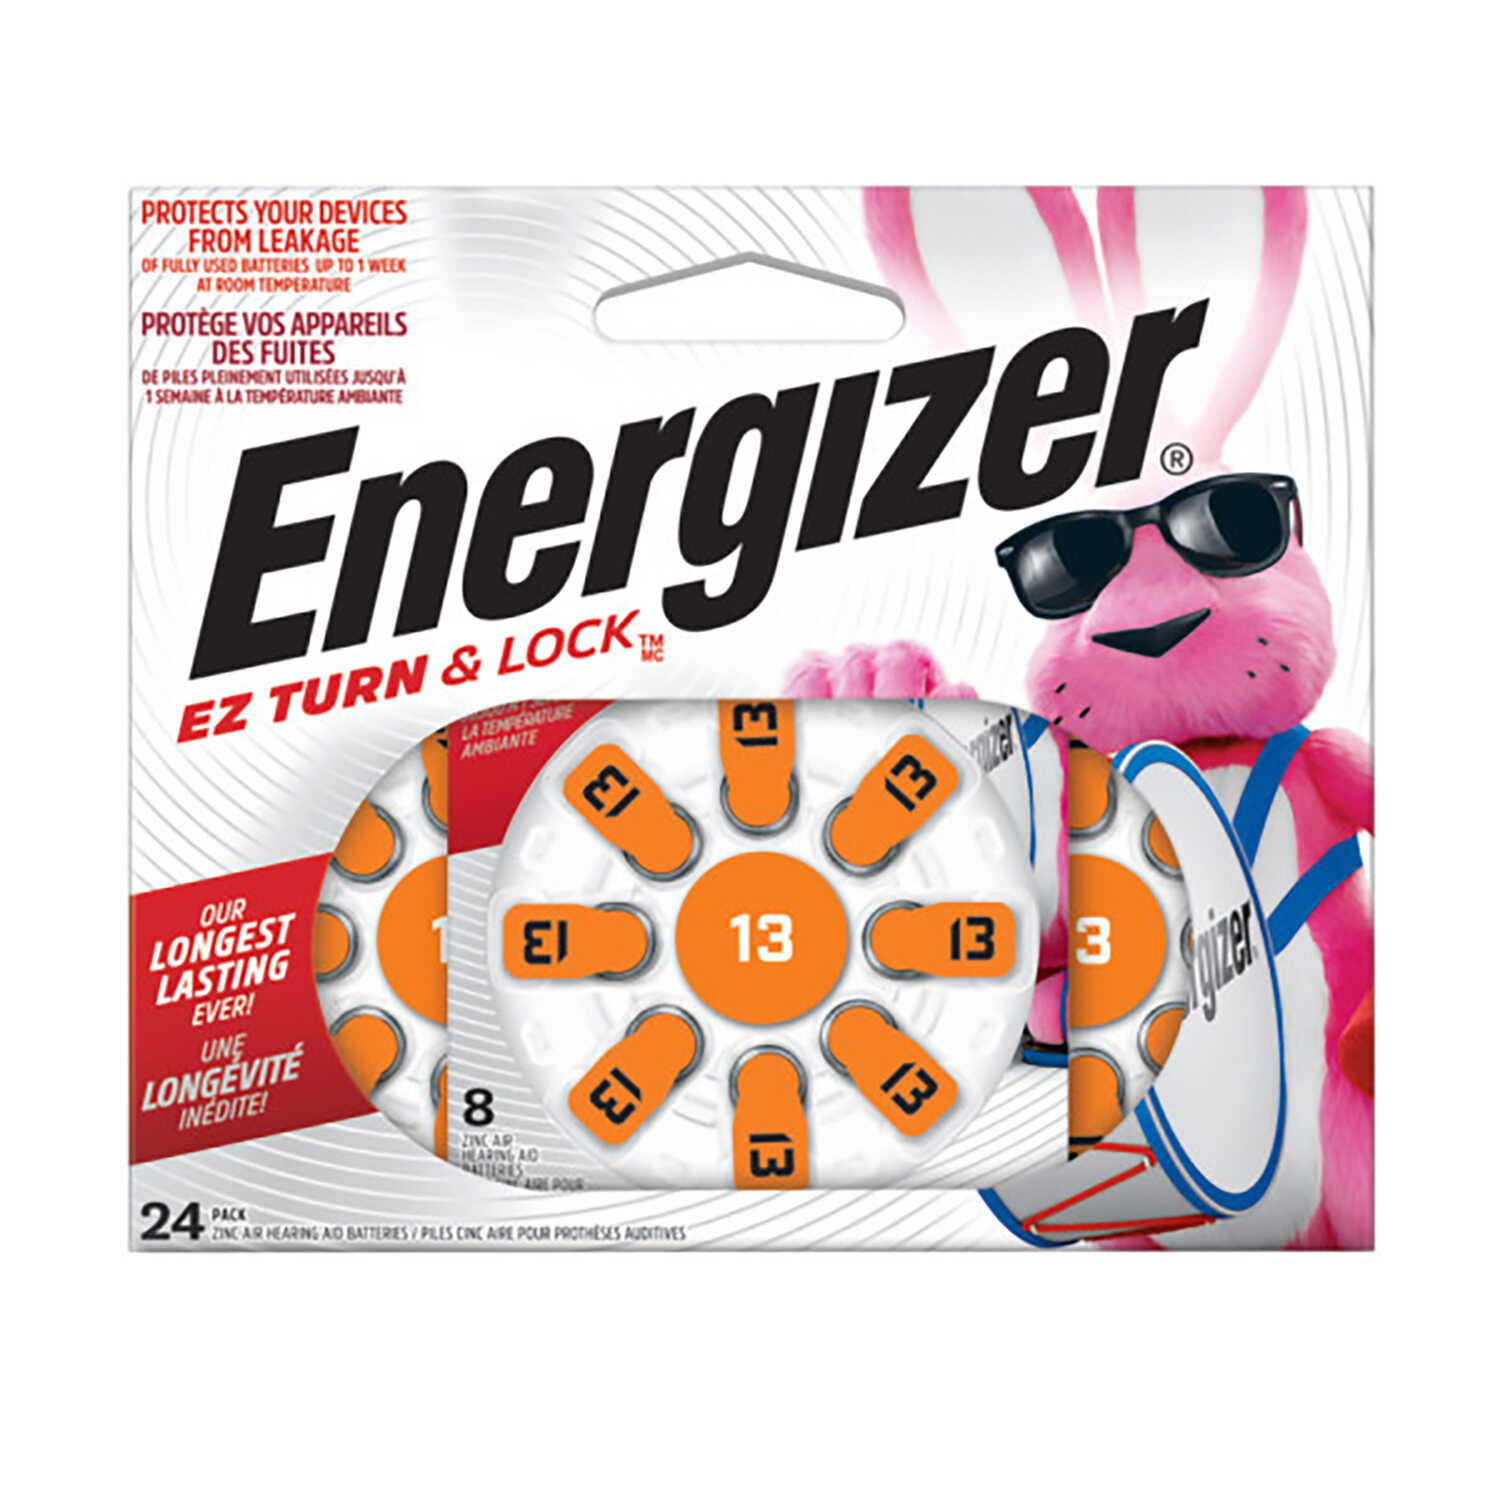 Energizer  Zinc Air  13  1.4 volt Hearing Aid Battery  24 pk